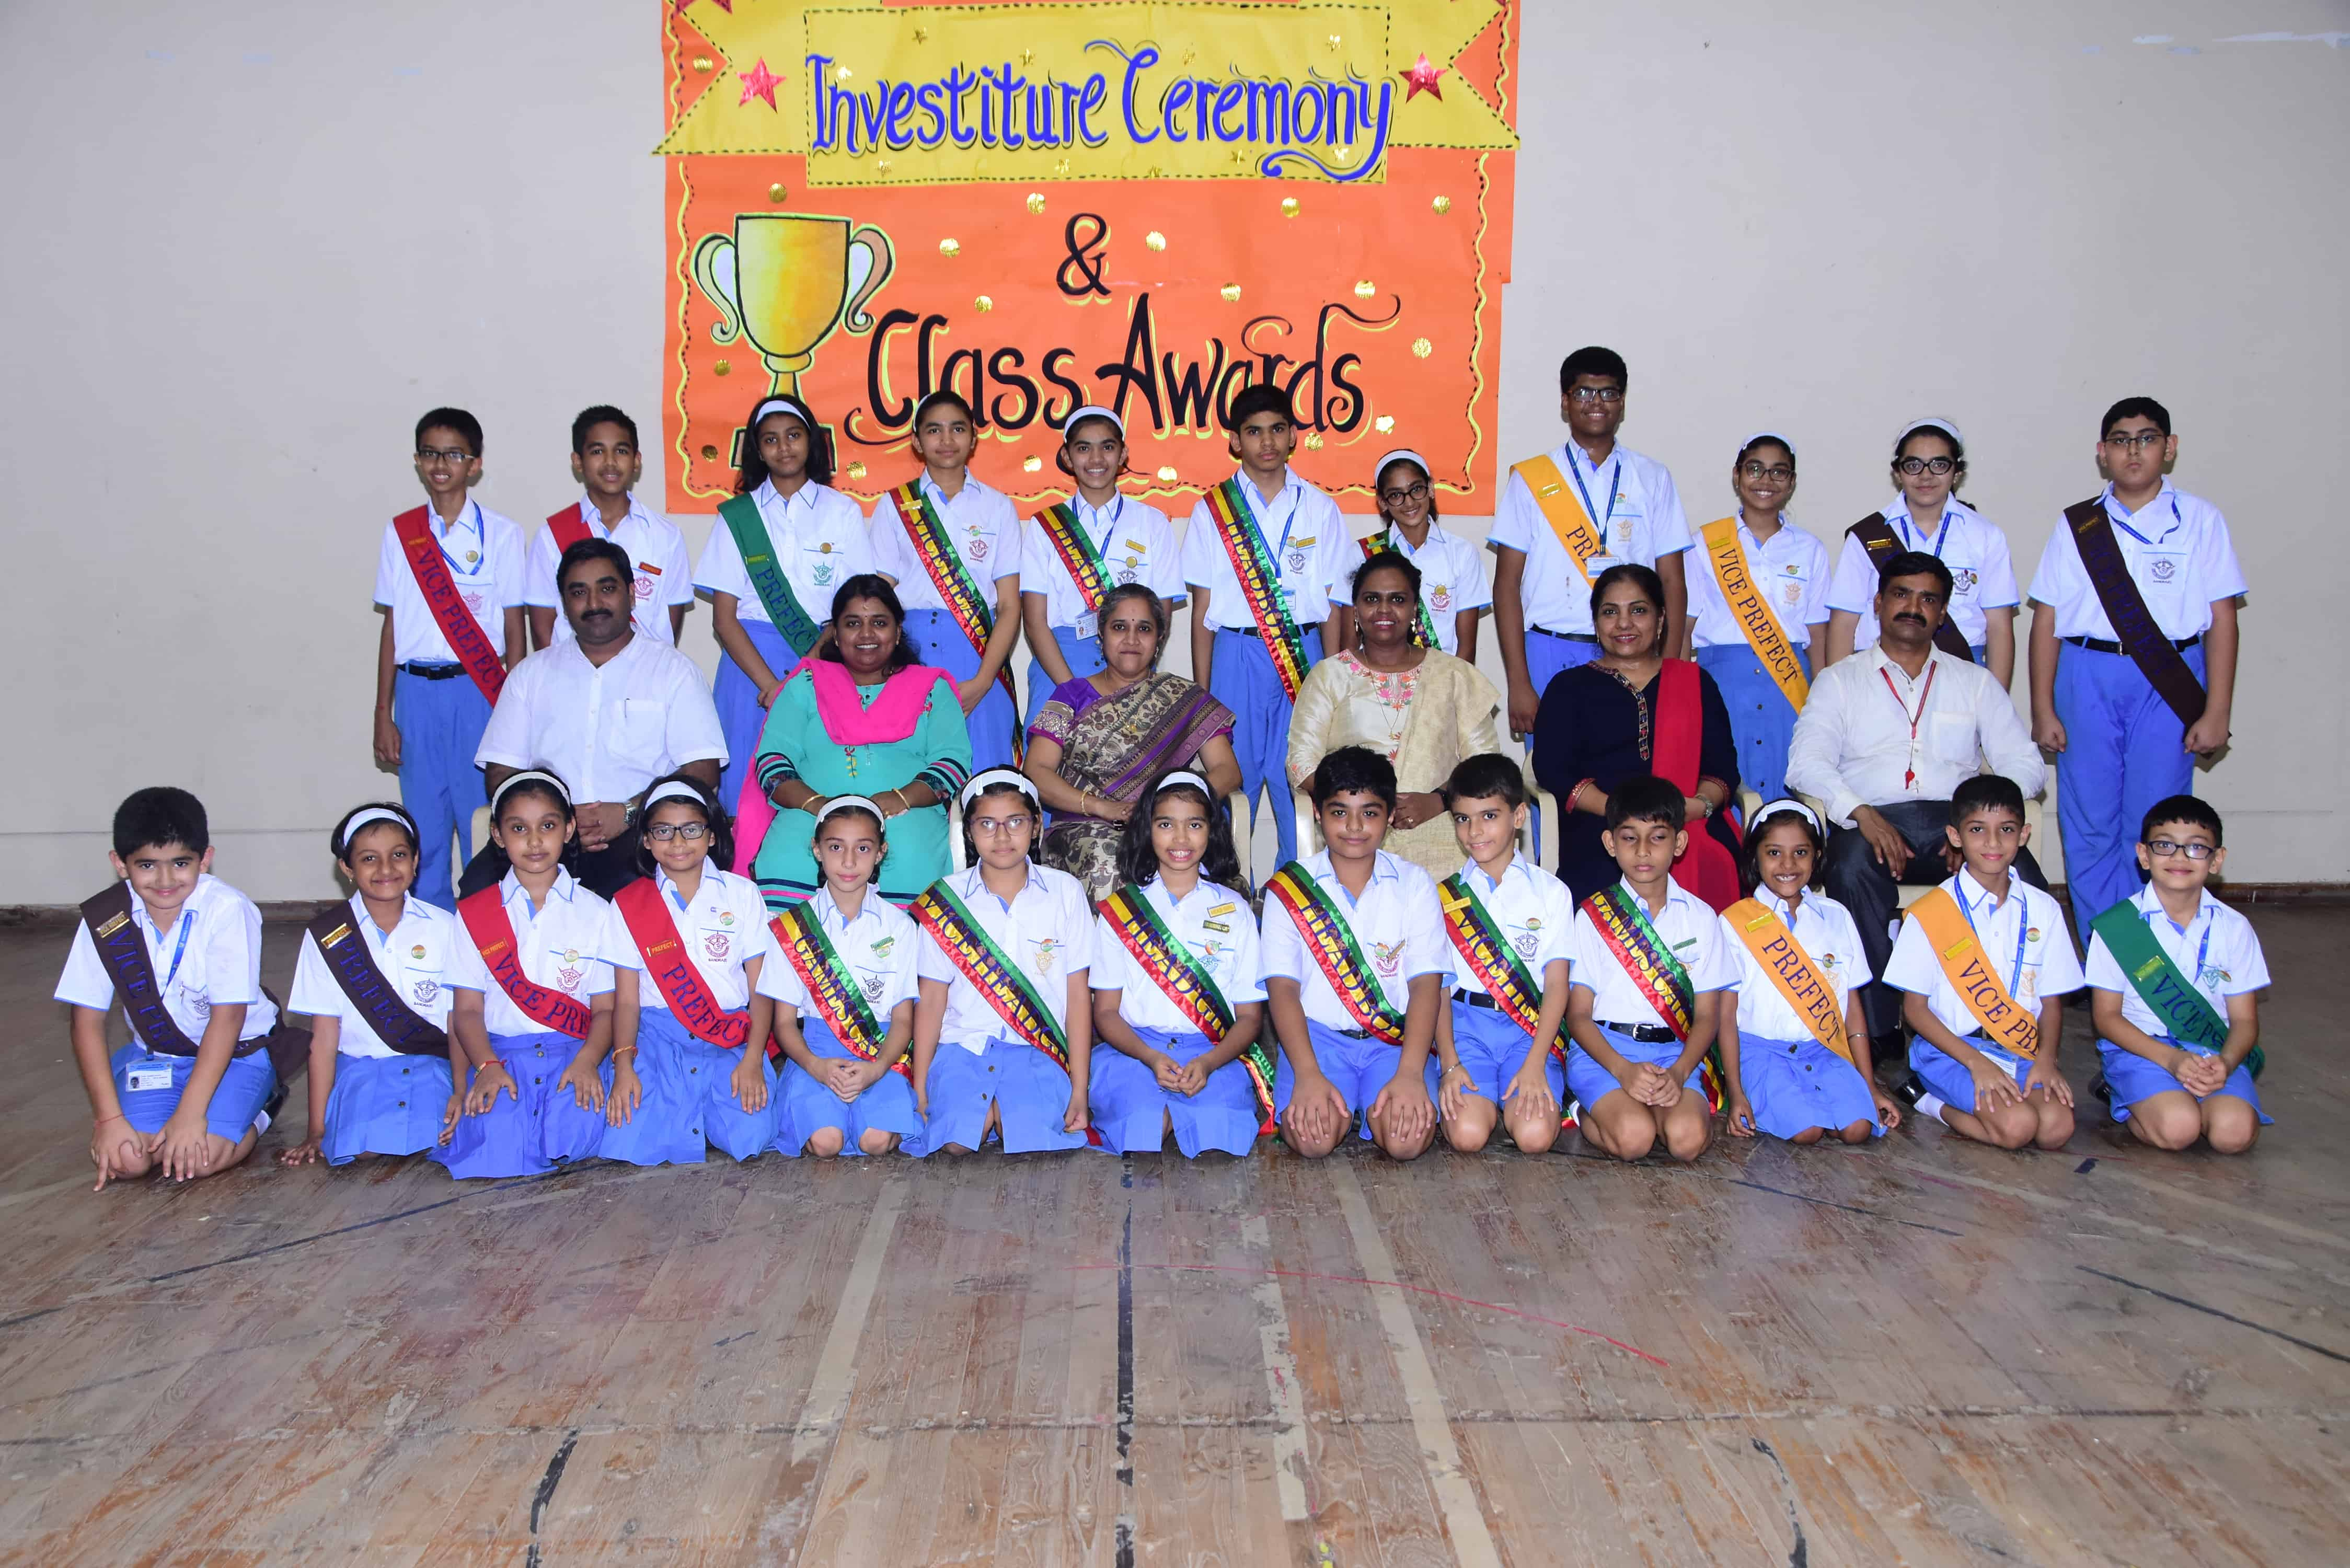 Investiture Ceremony and Class Awards 2019